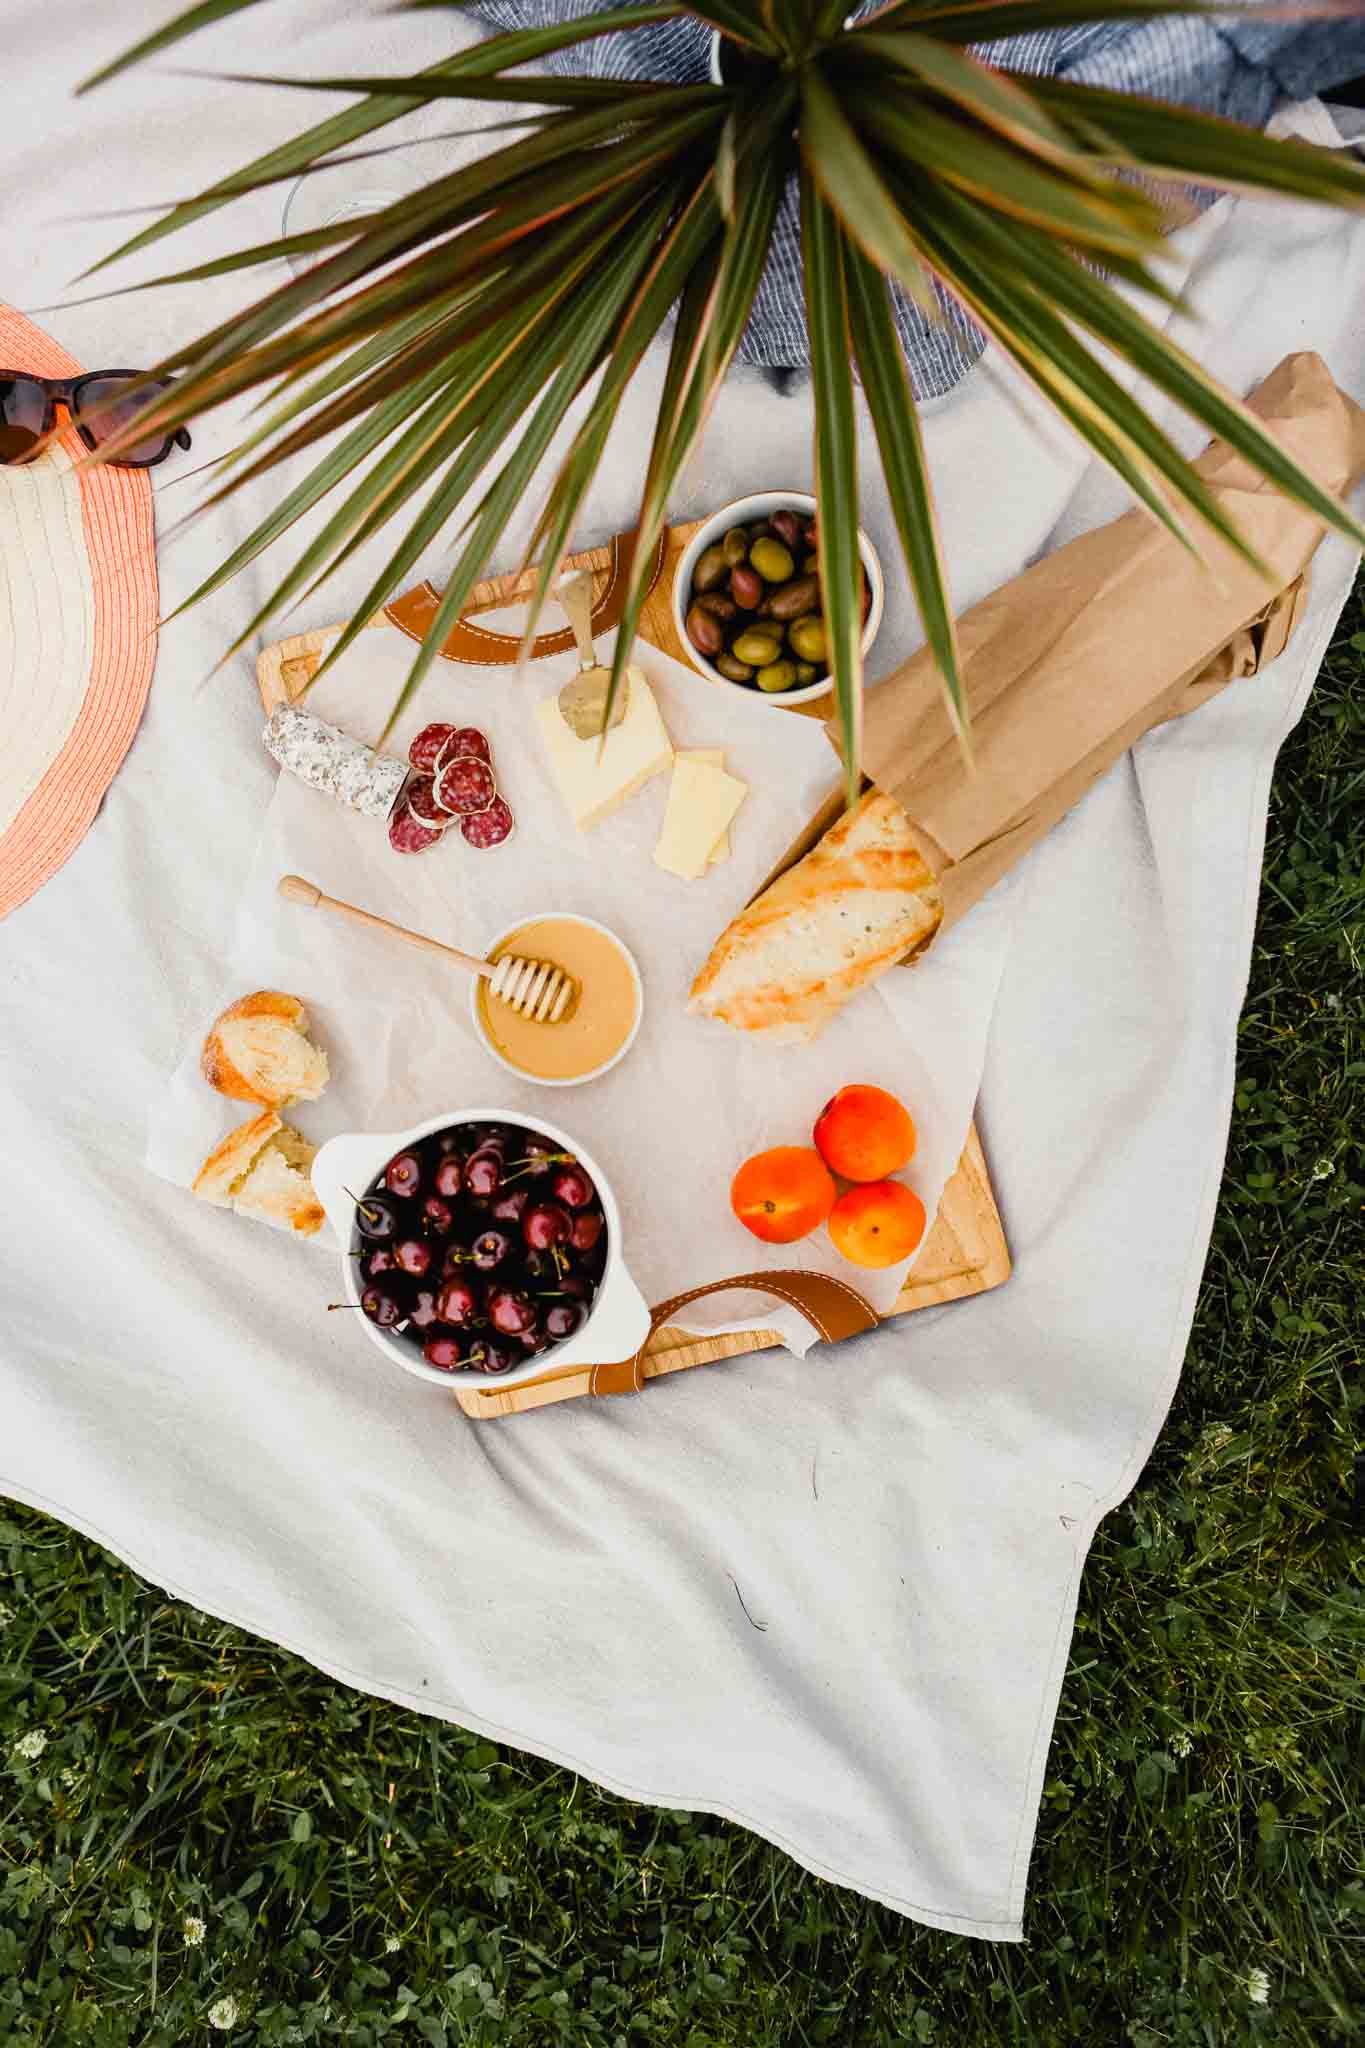 Overhead photograph of picnic spread on a white blanket on grass